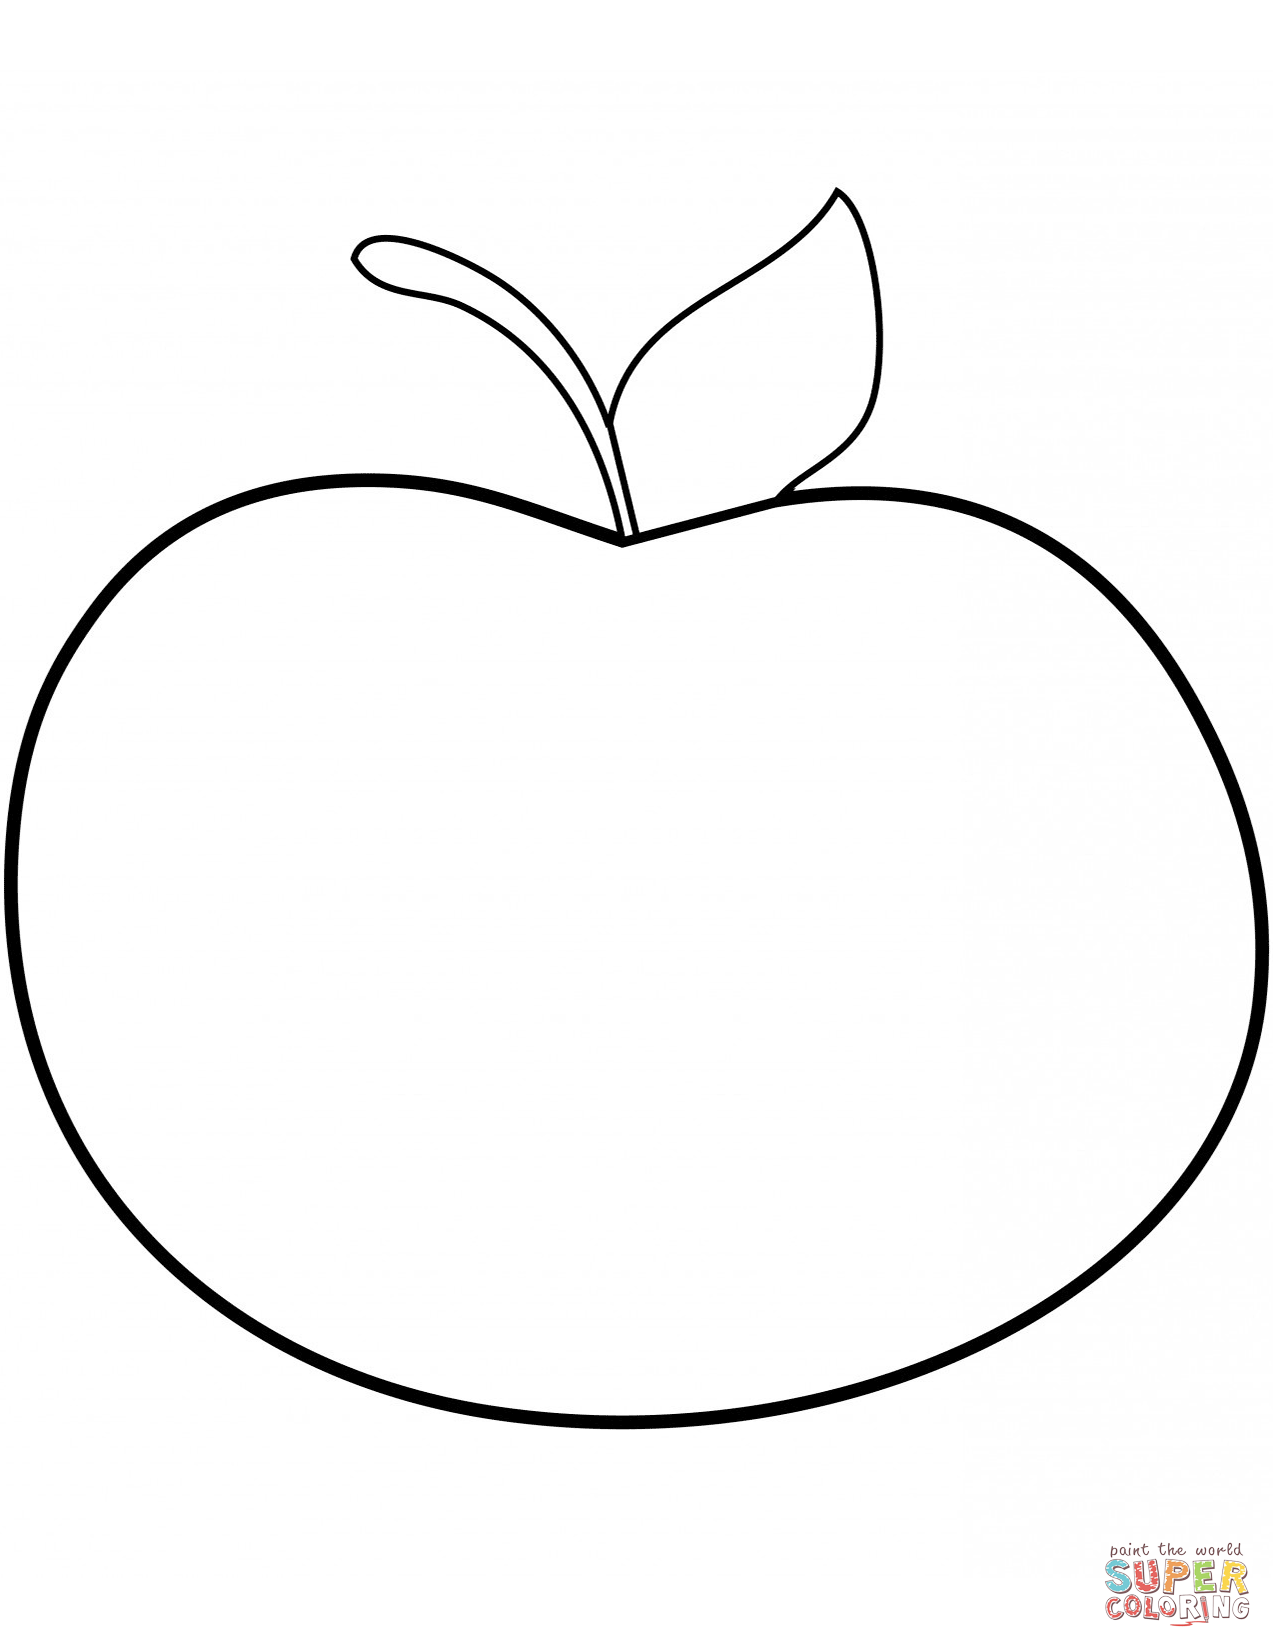 Simple Apple Coloring Page Free Printable Coloring Pages